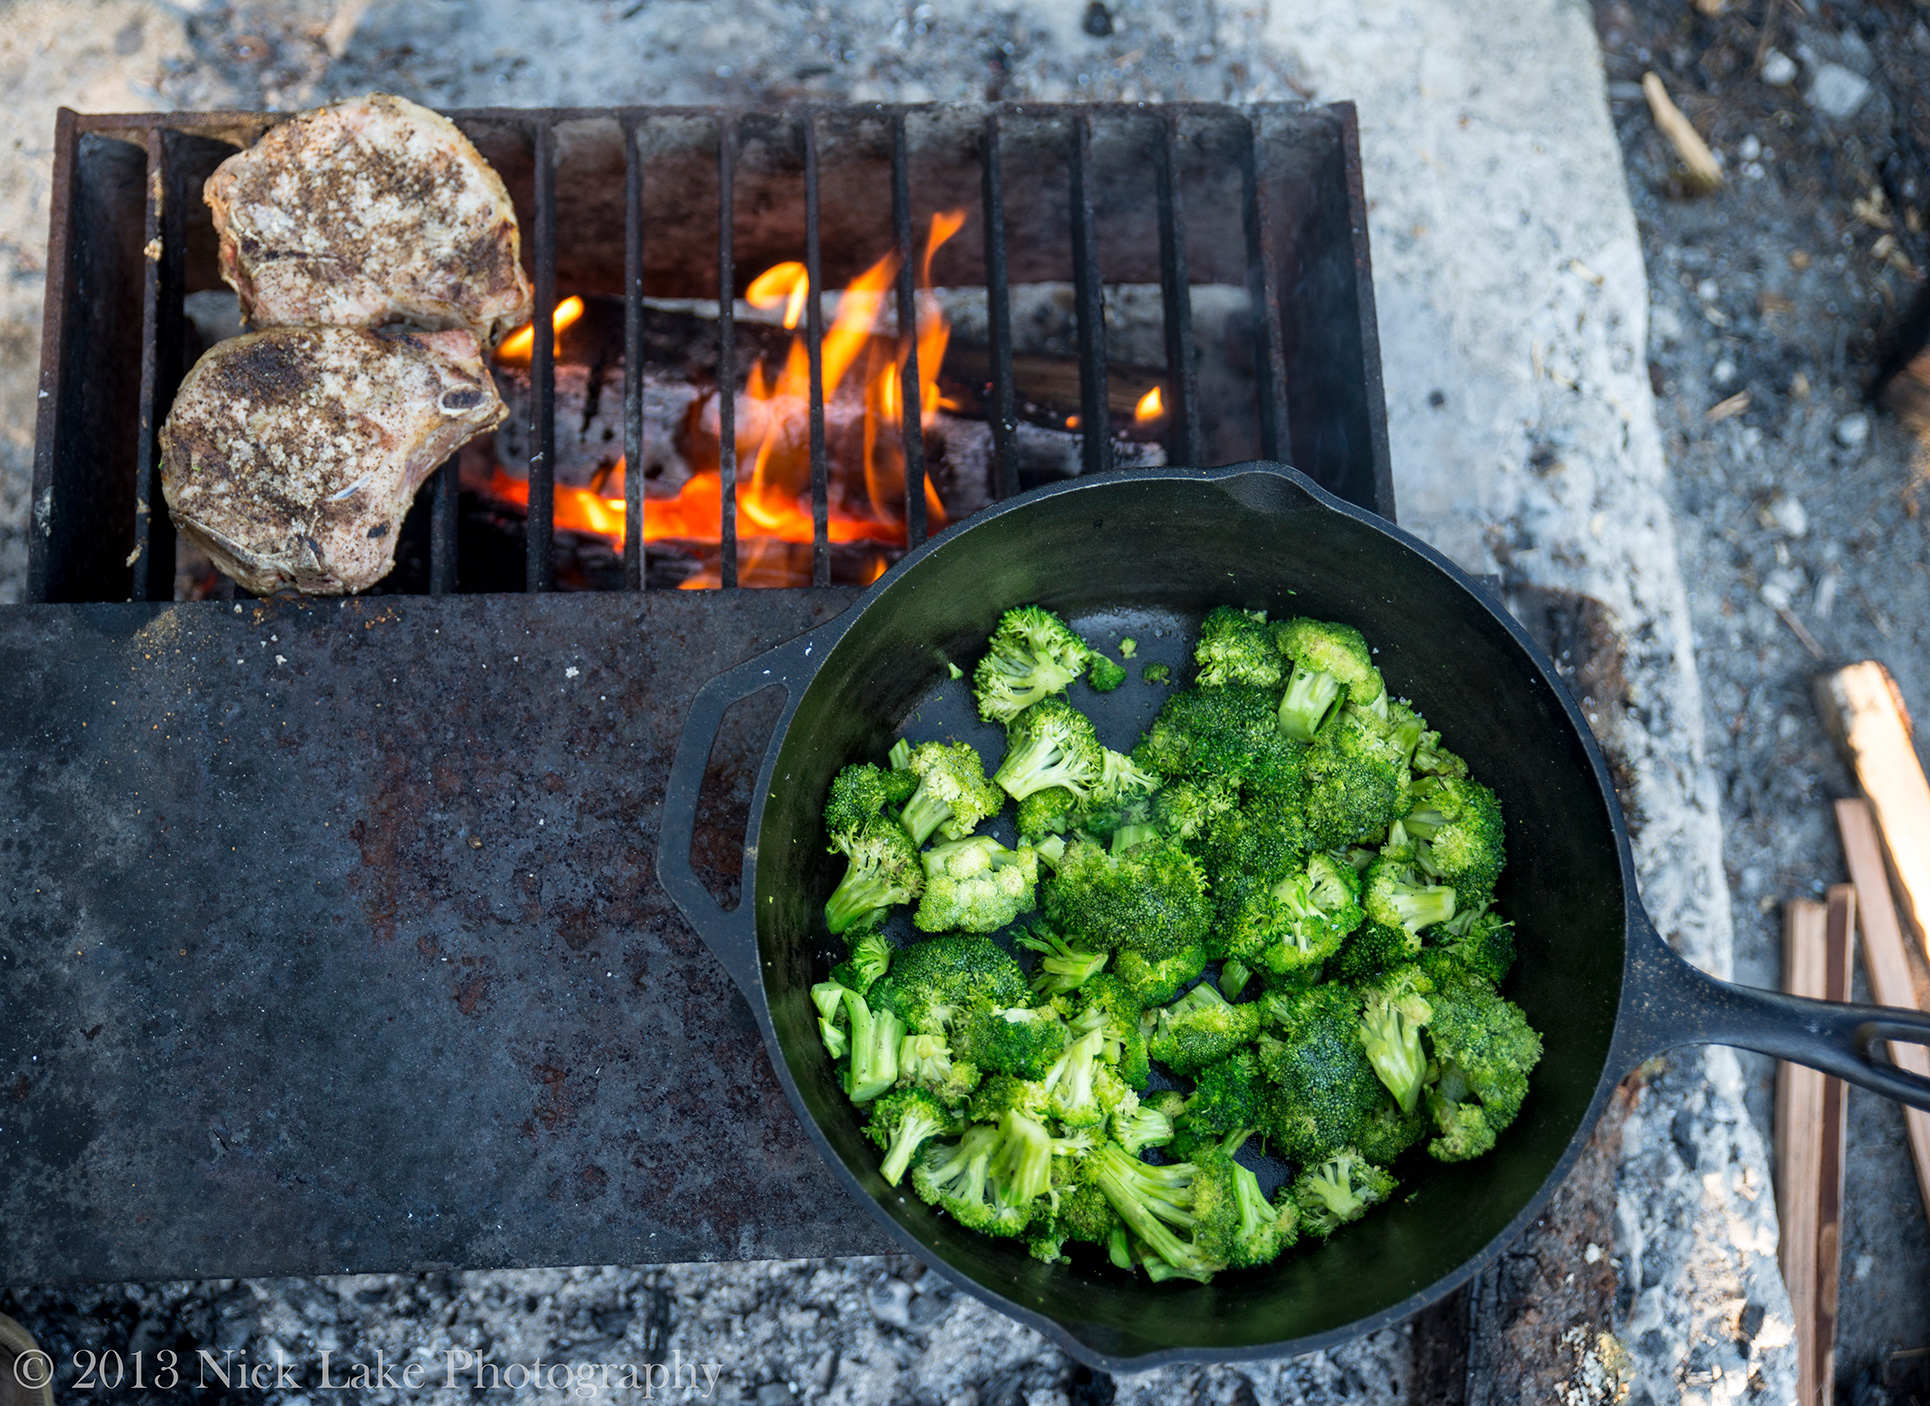 Broccoli and Pork Chops heat up over our campfire